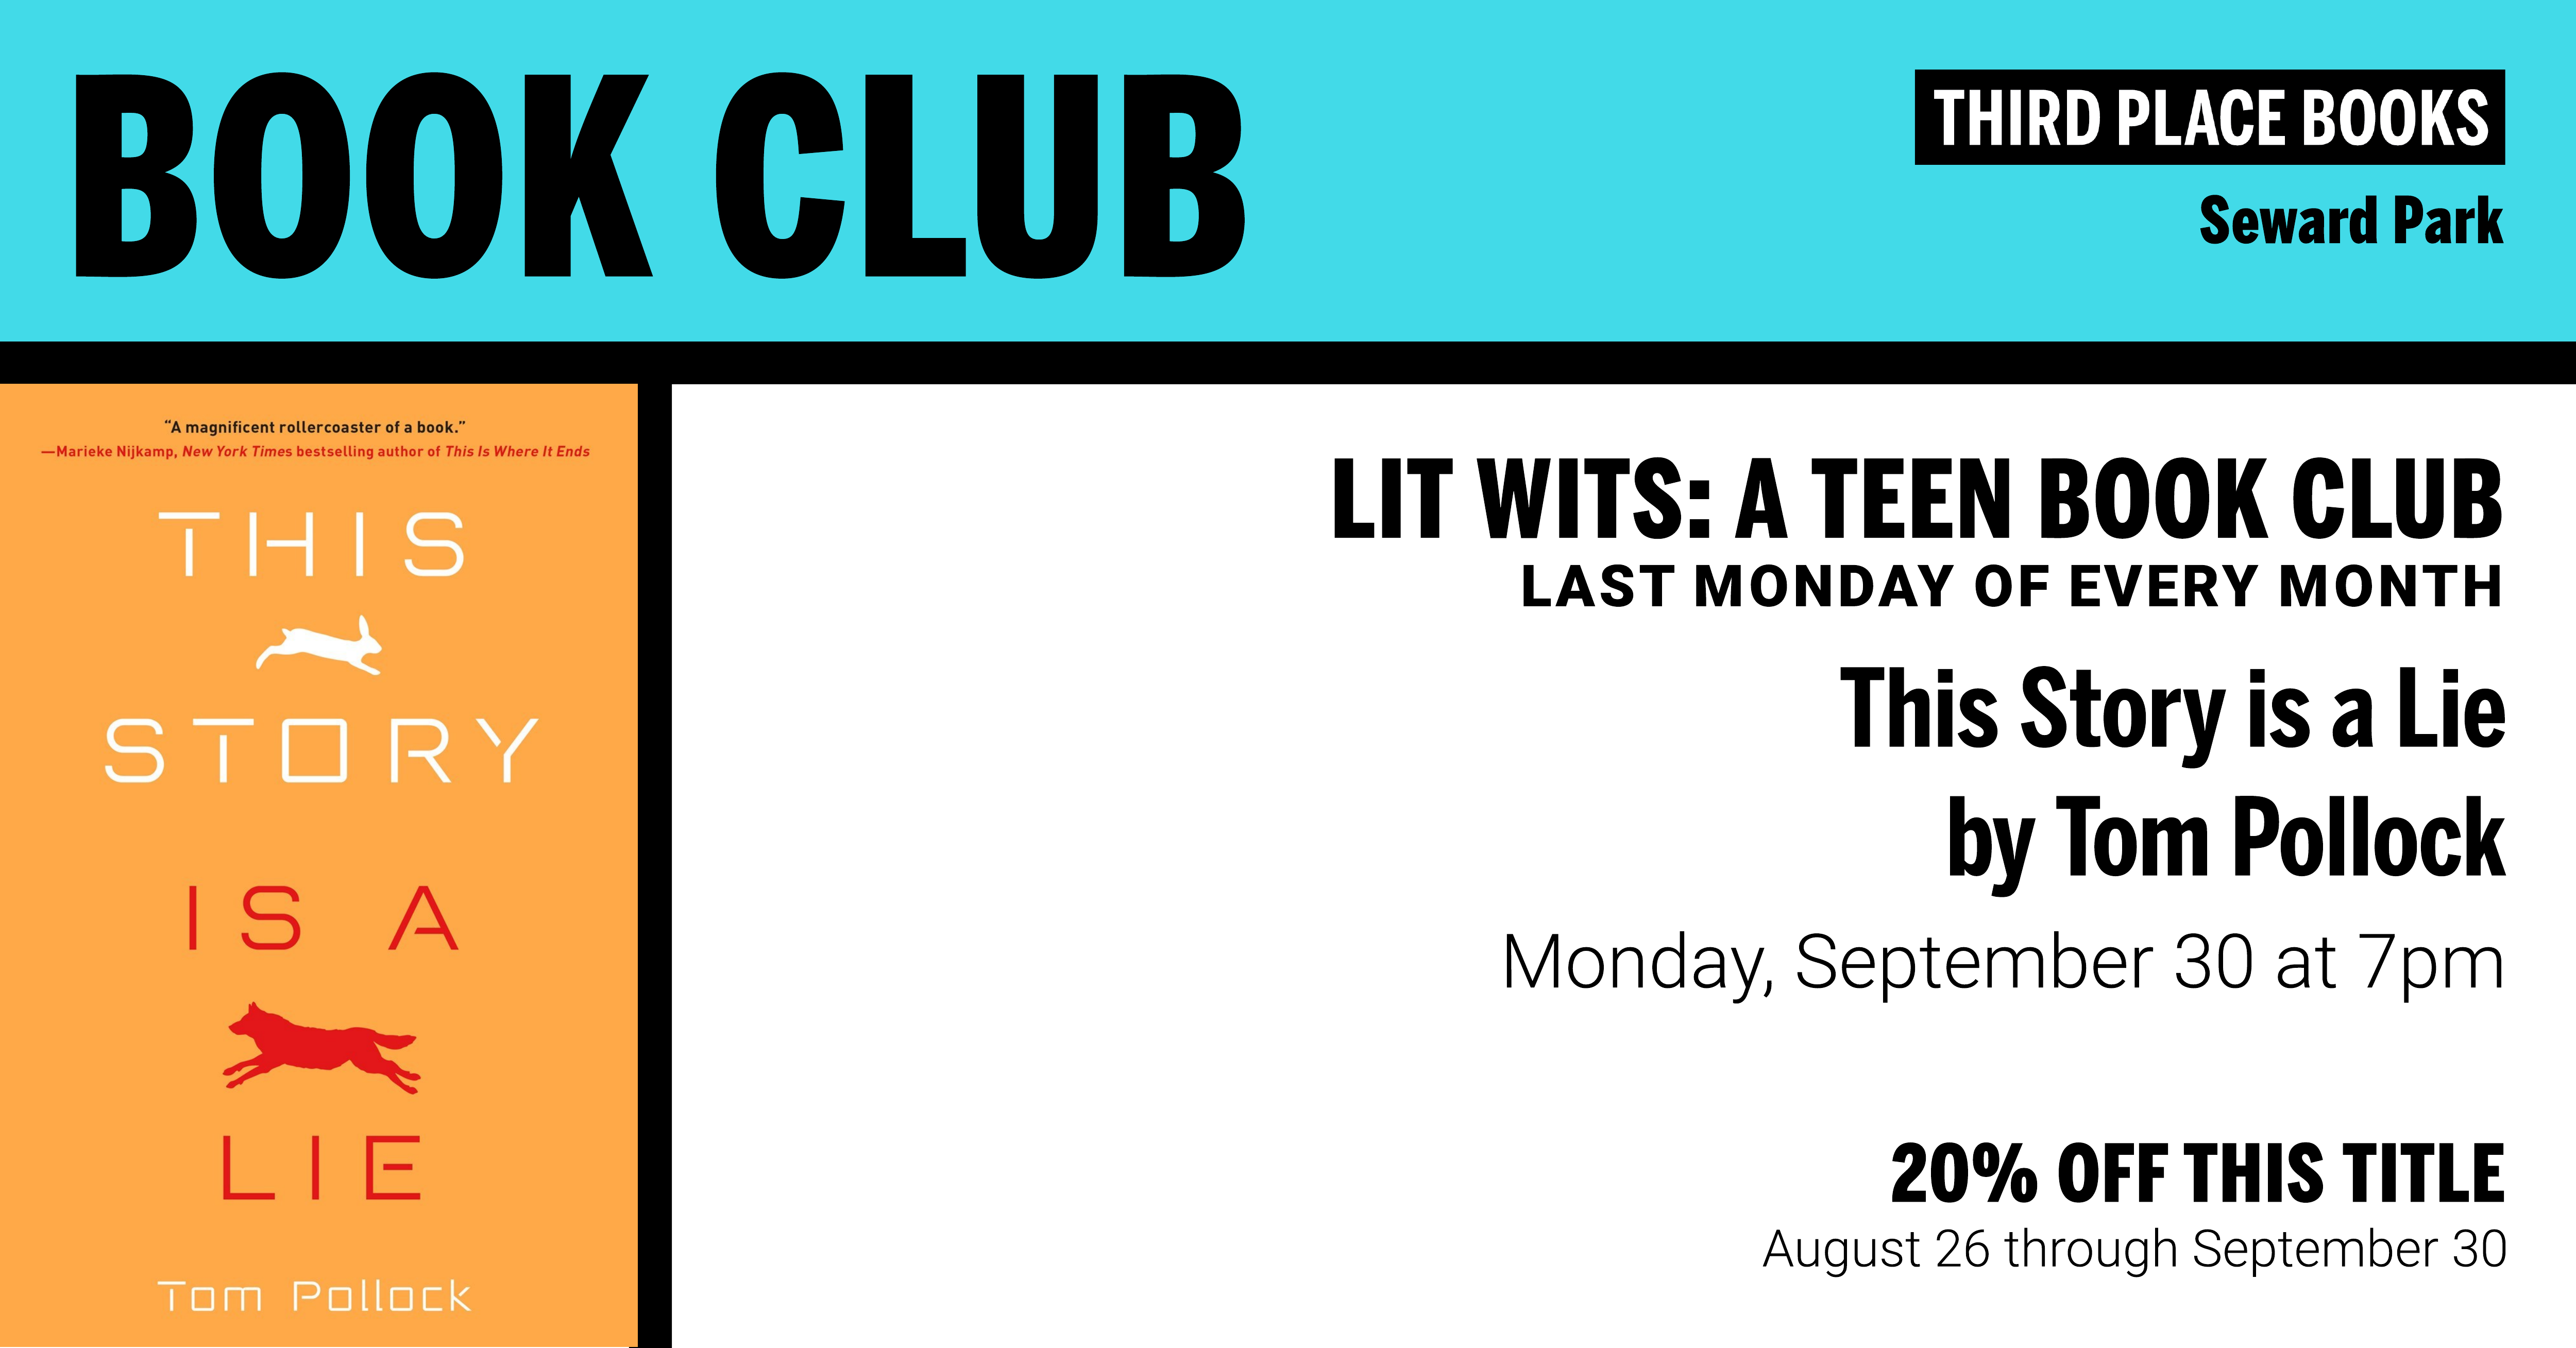 Lit Wits: A Teen Book Club discussing This Story is a Lie by Tom Pollock on Monday, September 30 at 7pm